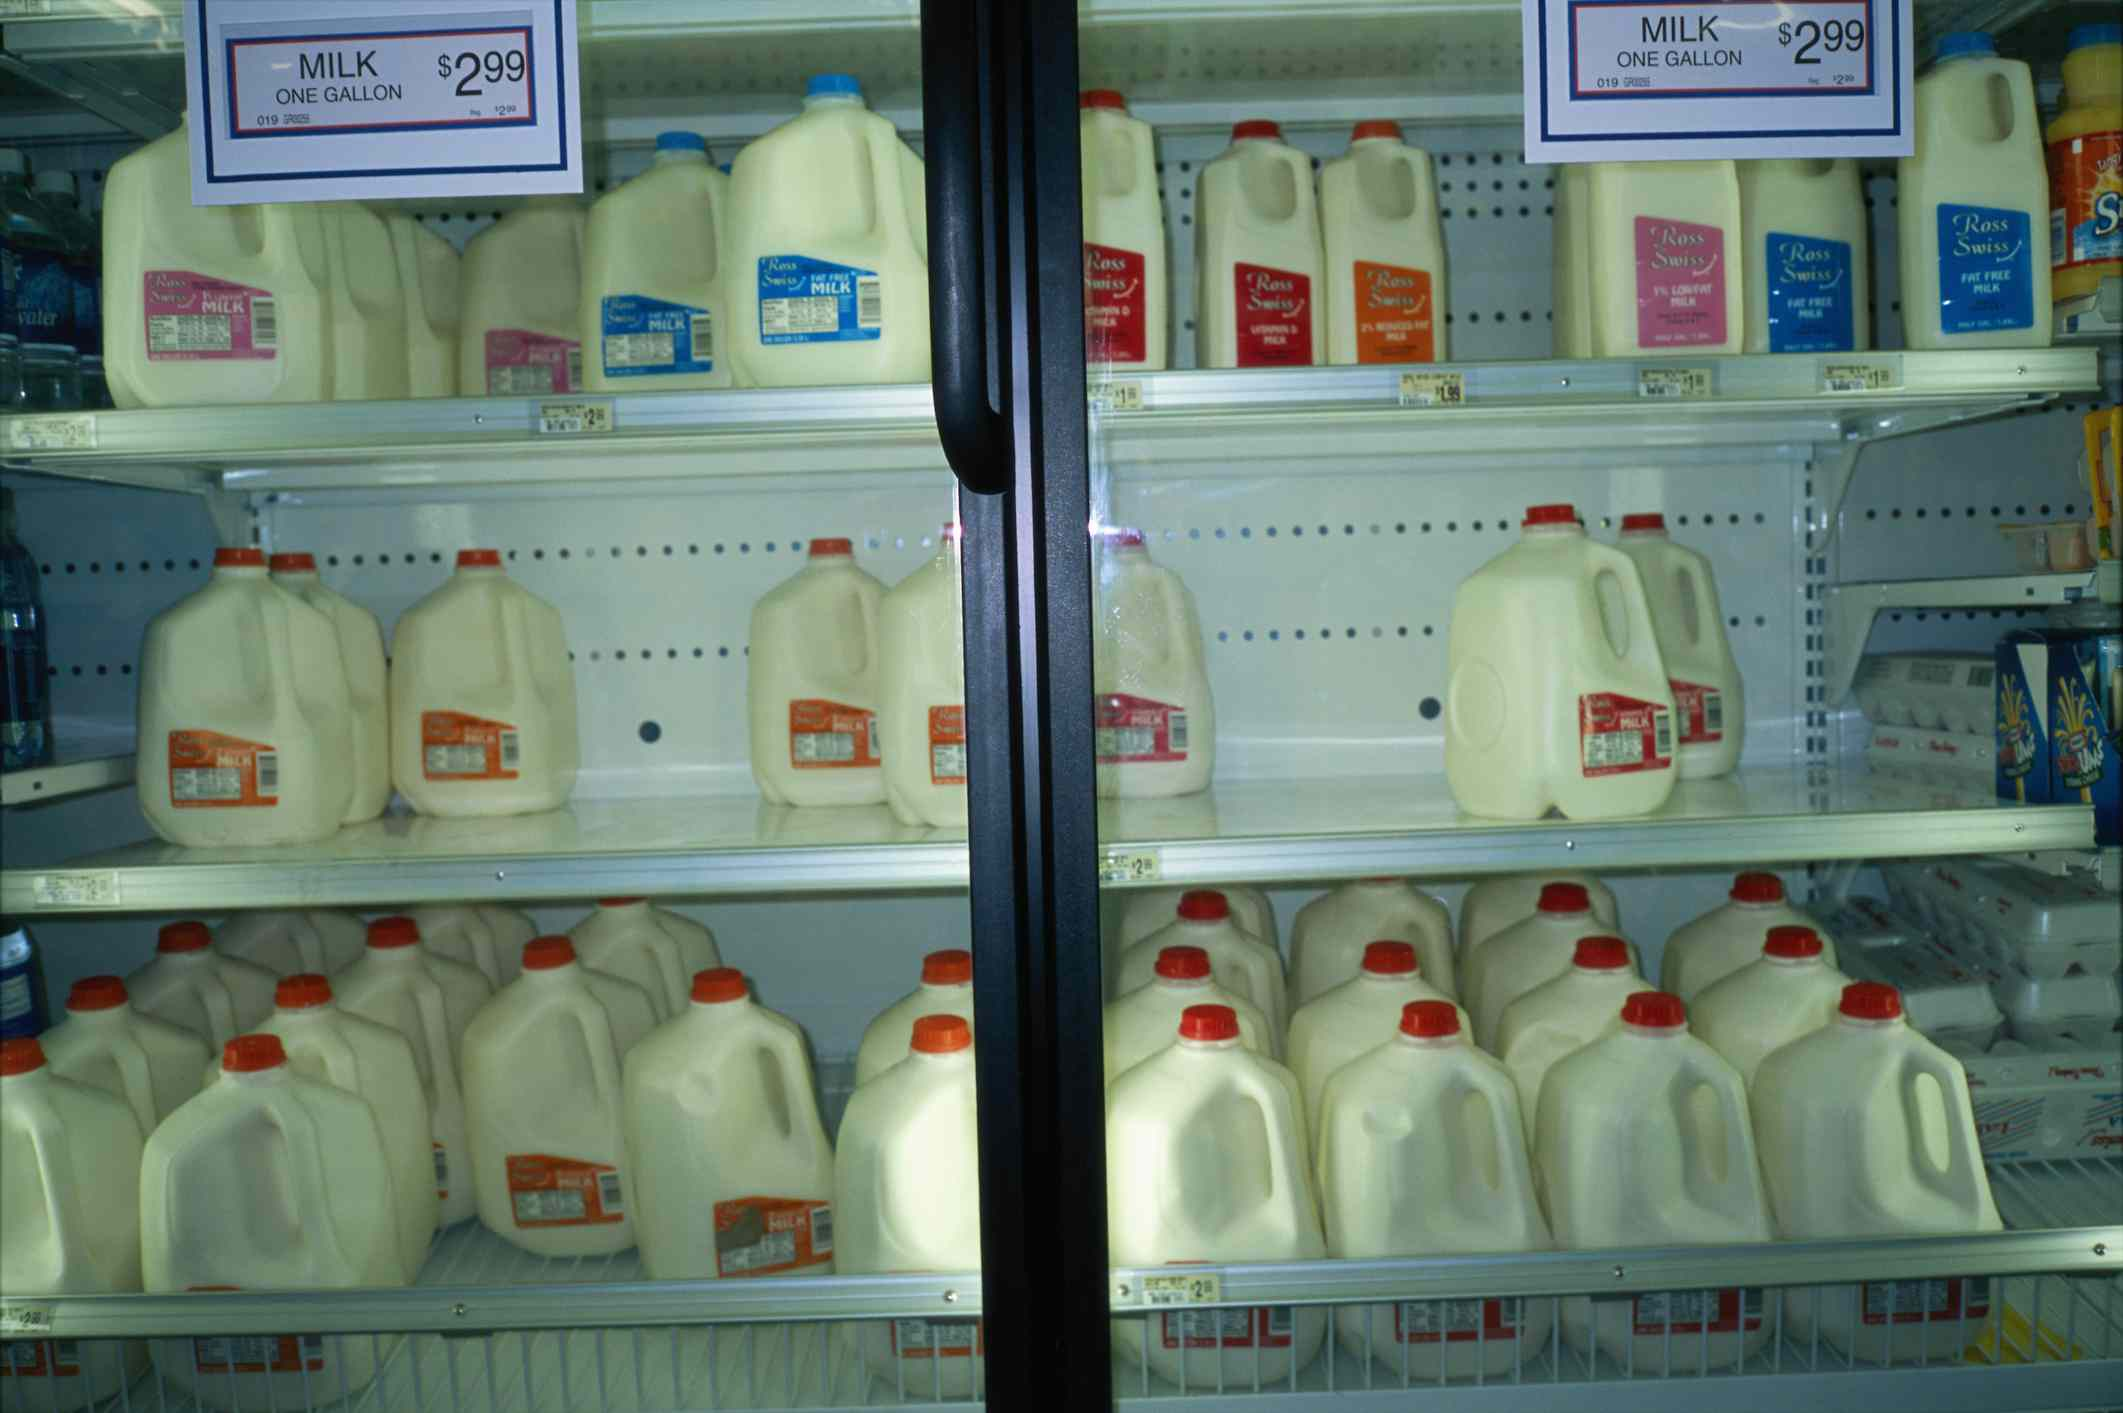 Milk jugs in a fridge at a store with signs.